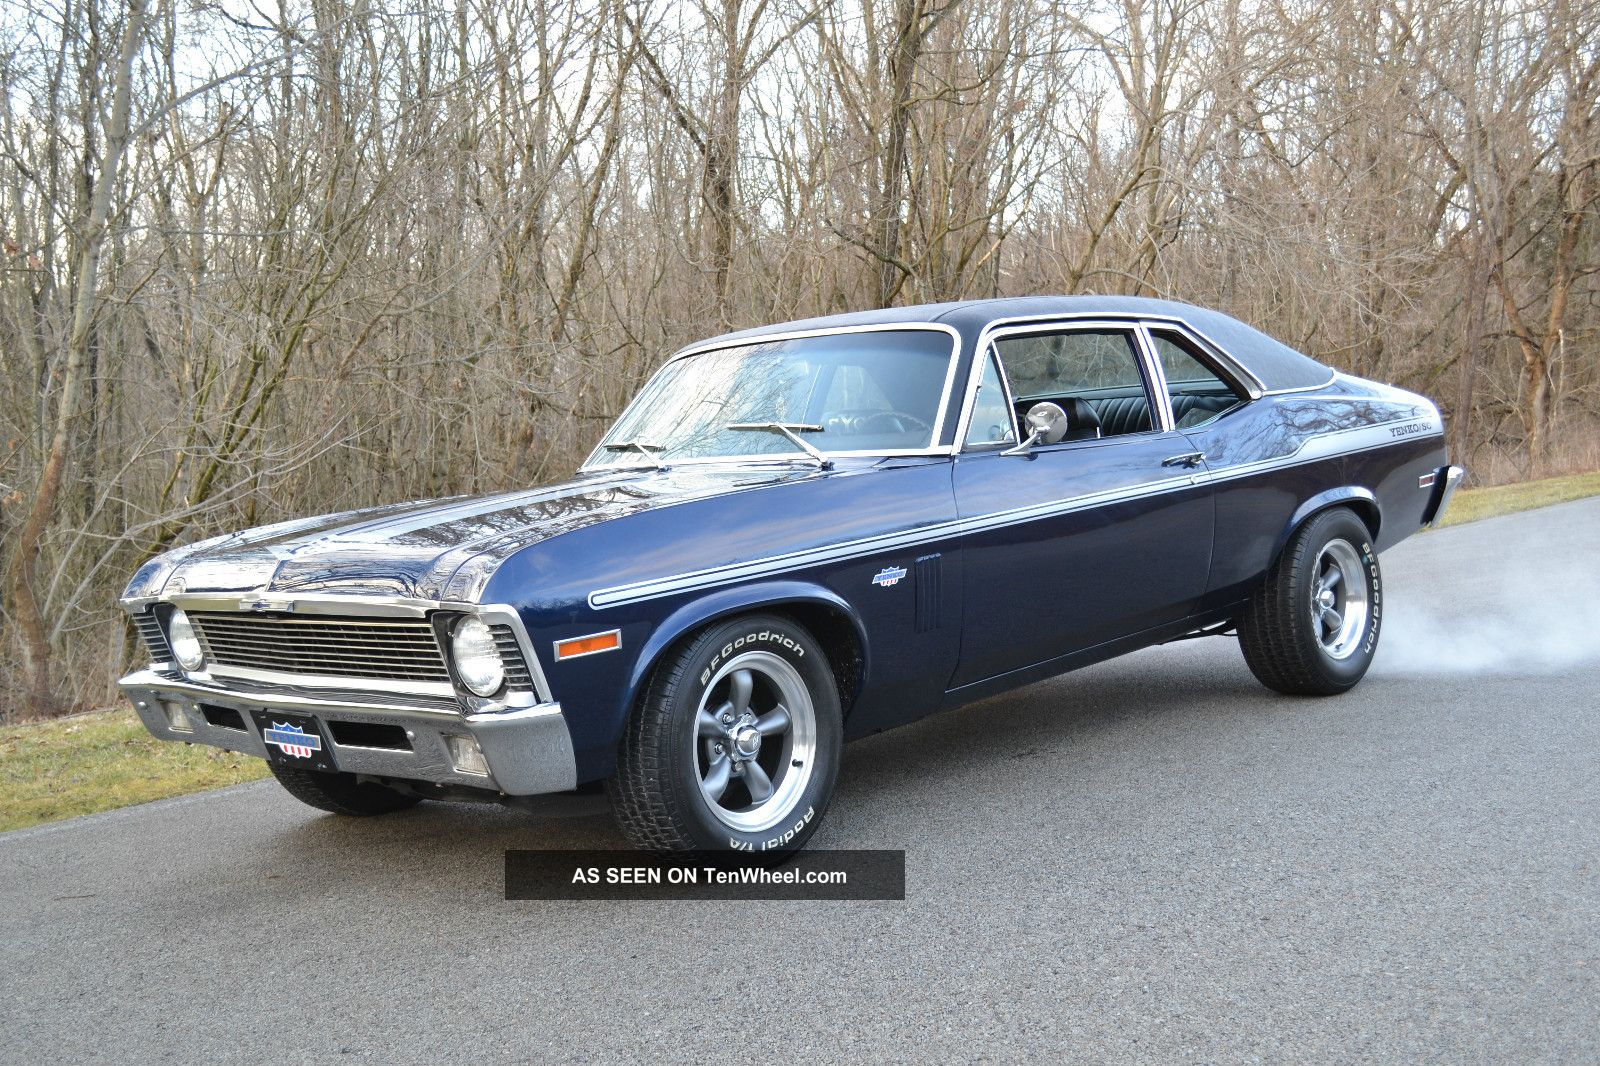 1970 Nova327 With Yenko Trim Indigo Blue Paint Nova